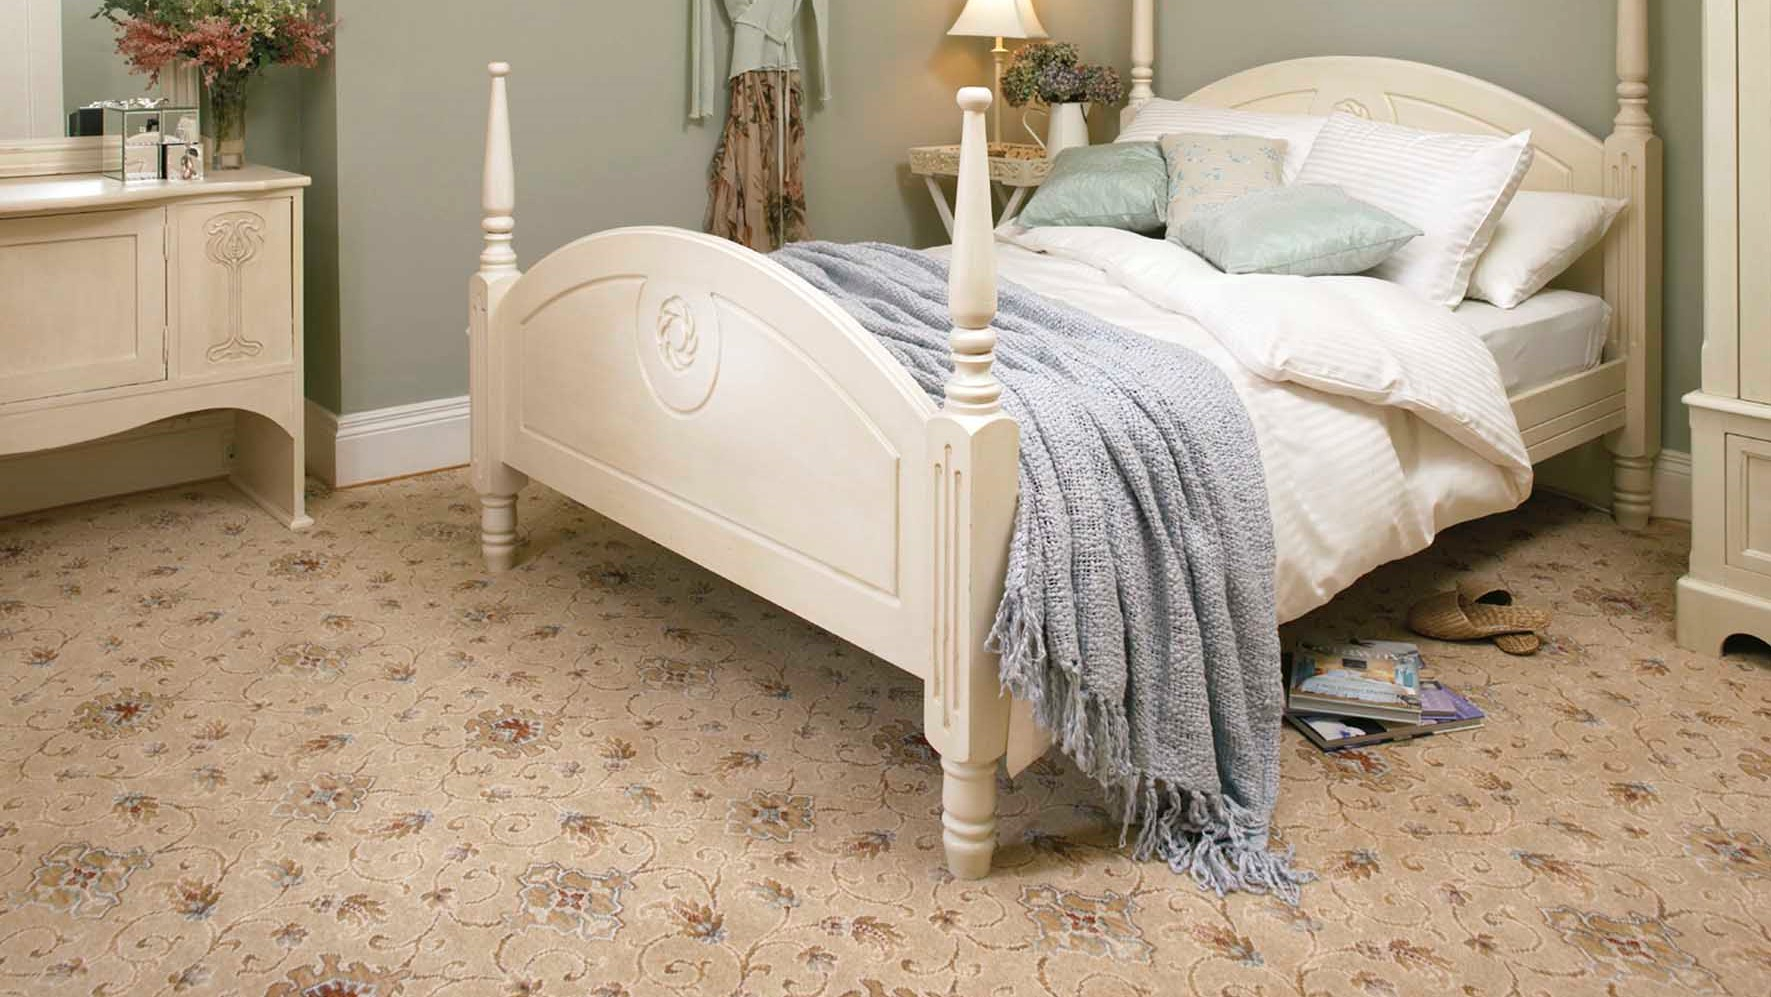 Small Scale Bedroom Furniture Stain Resistant Patterns Stripes